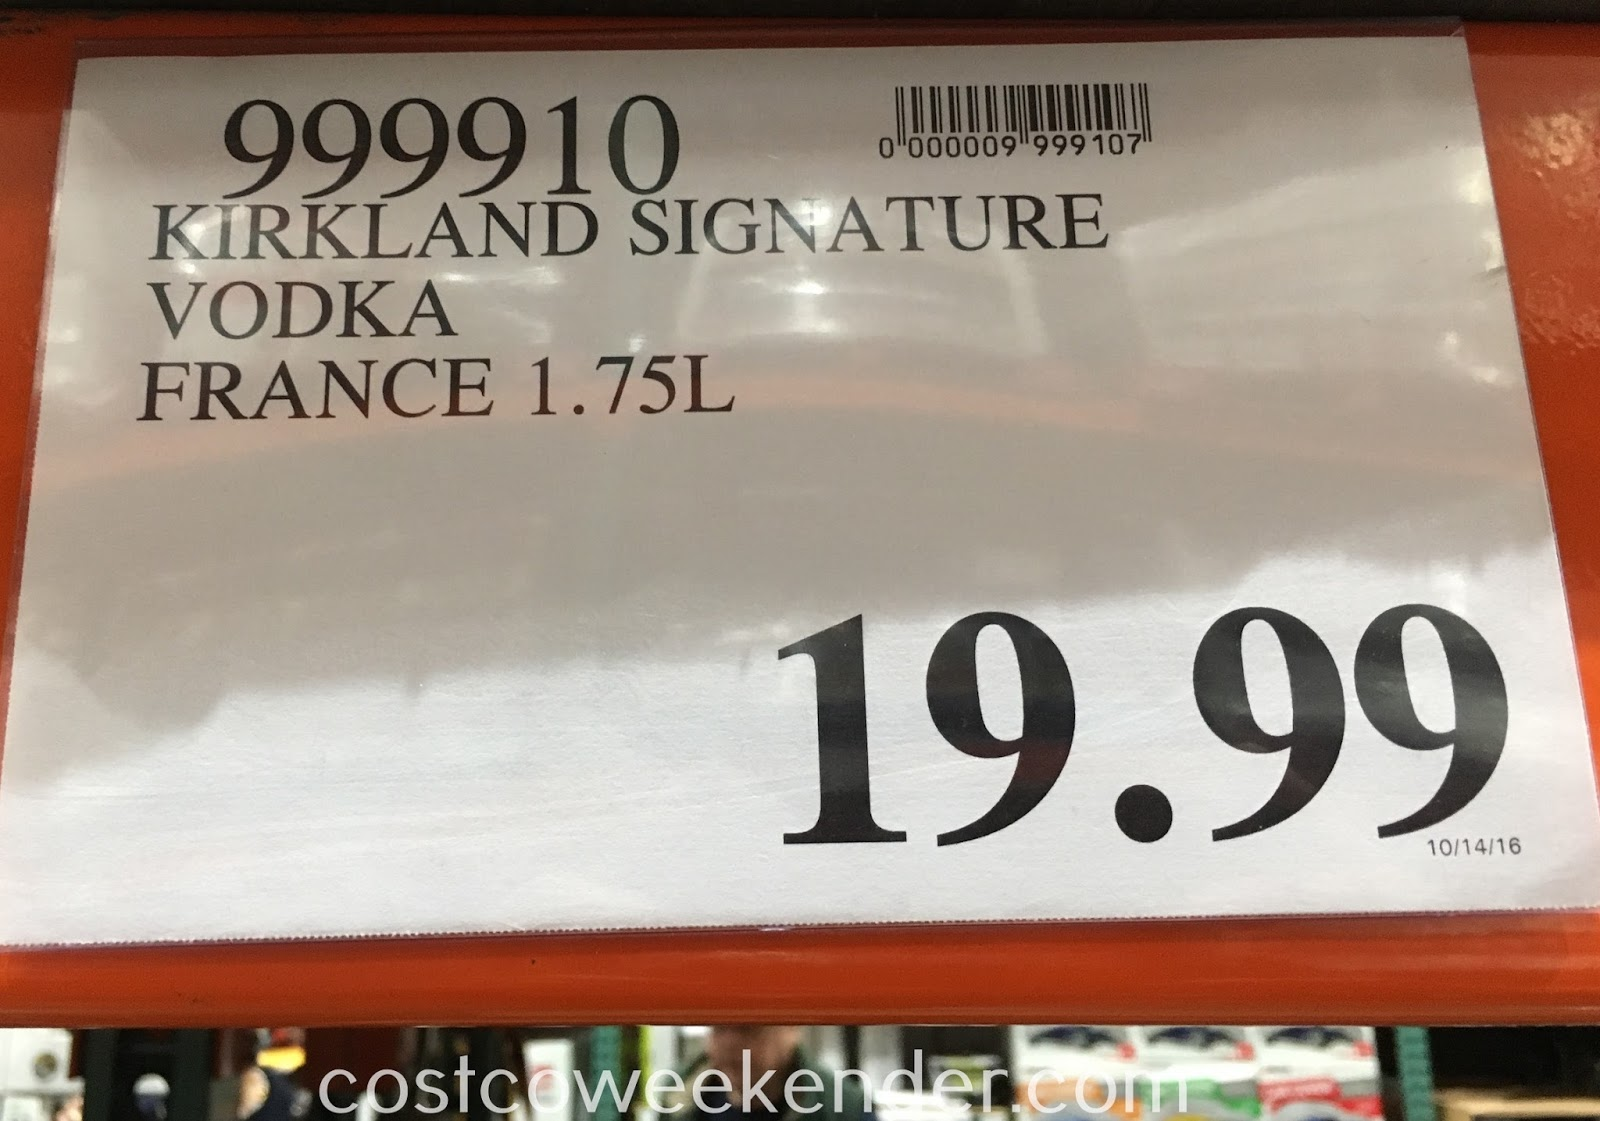 Deal for Kirkland Signature American Vodka at Costco